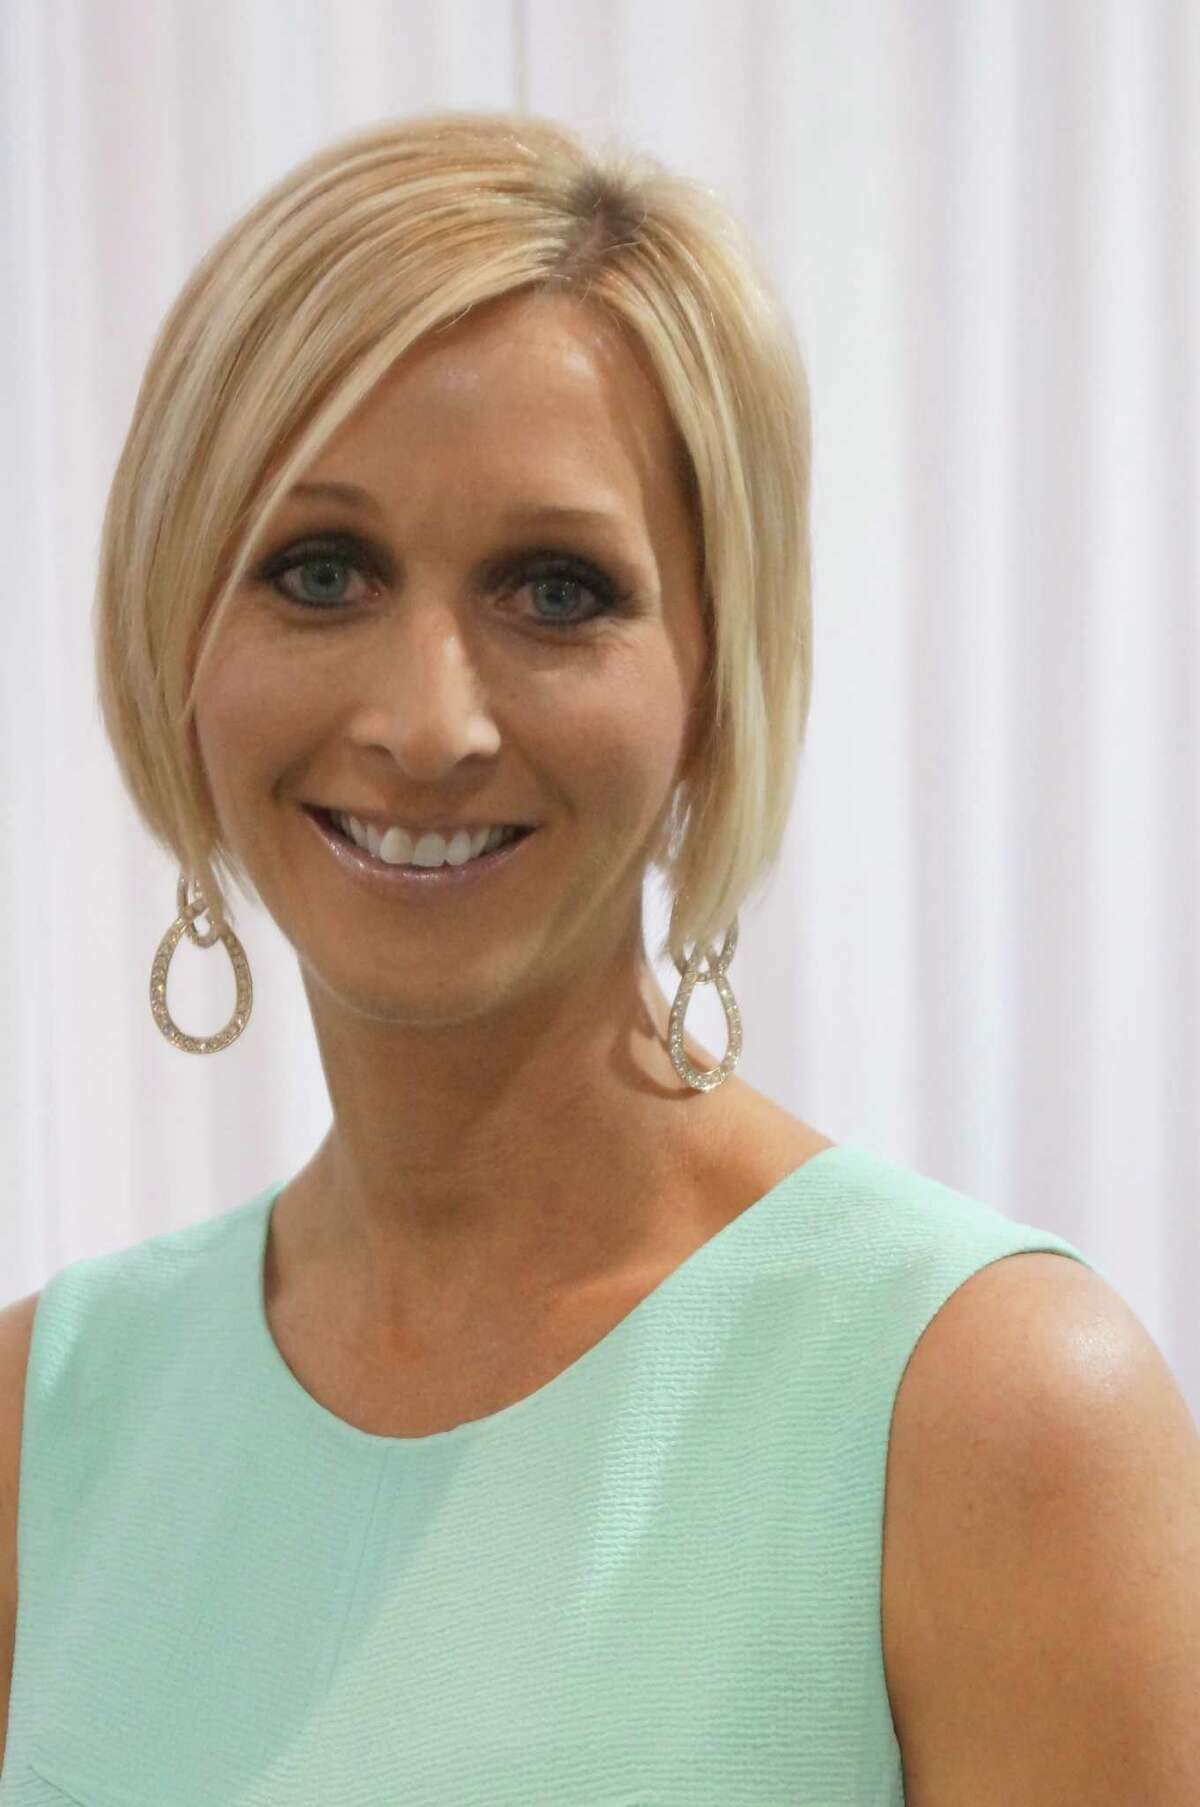 Interfaith of The Woodlands has selected Julia Dell as its 2013 Woman of Distinction.